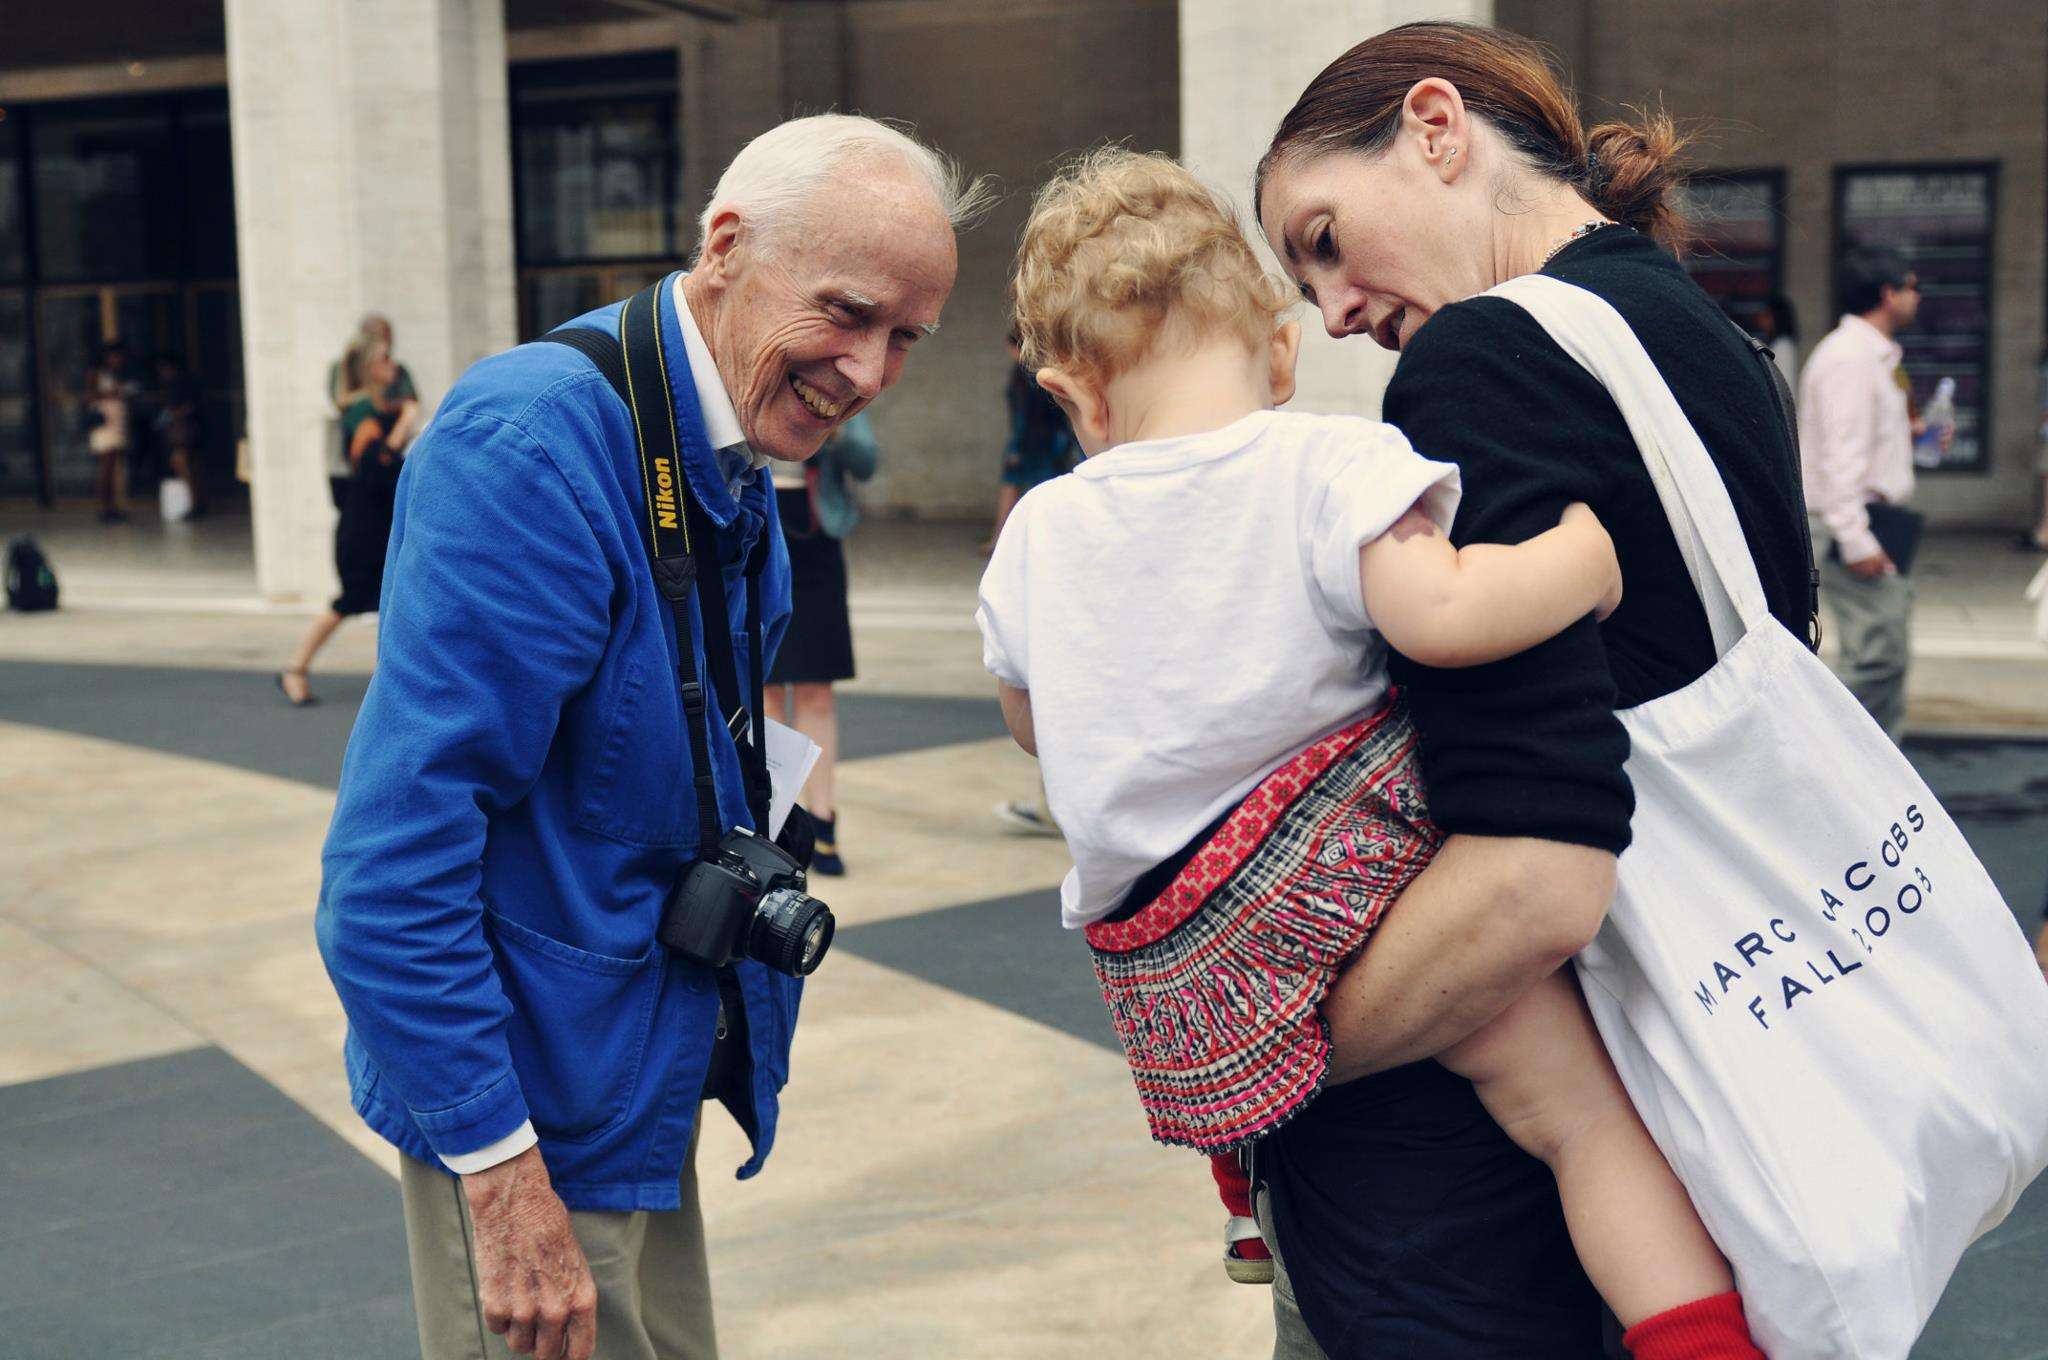 Bill Cunningham in 2012. By Jiyang Chen under CC BY-SA 3.0